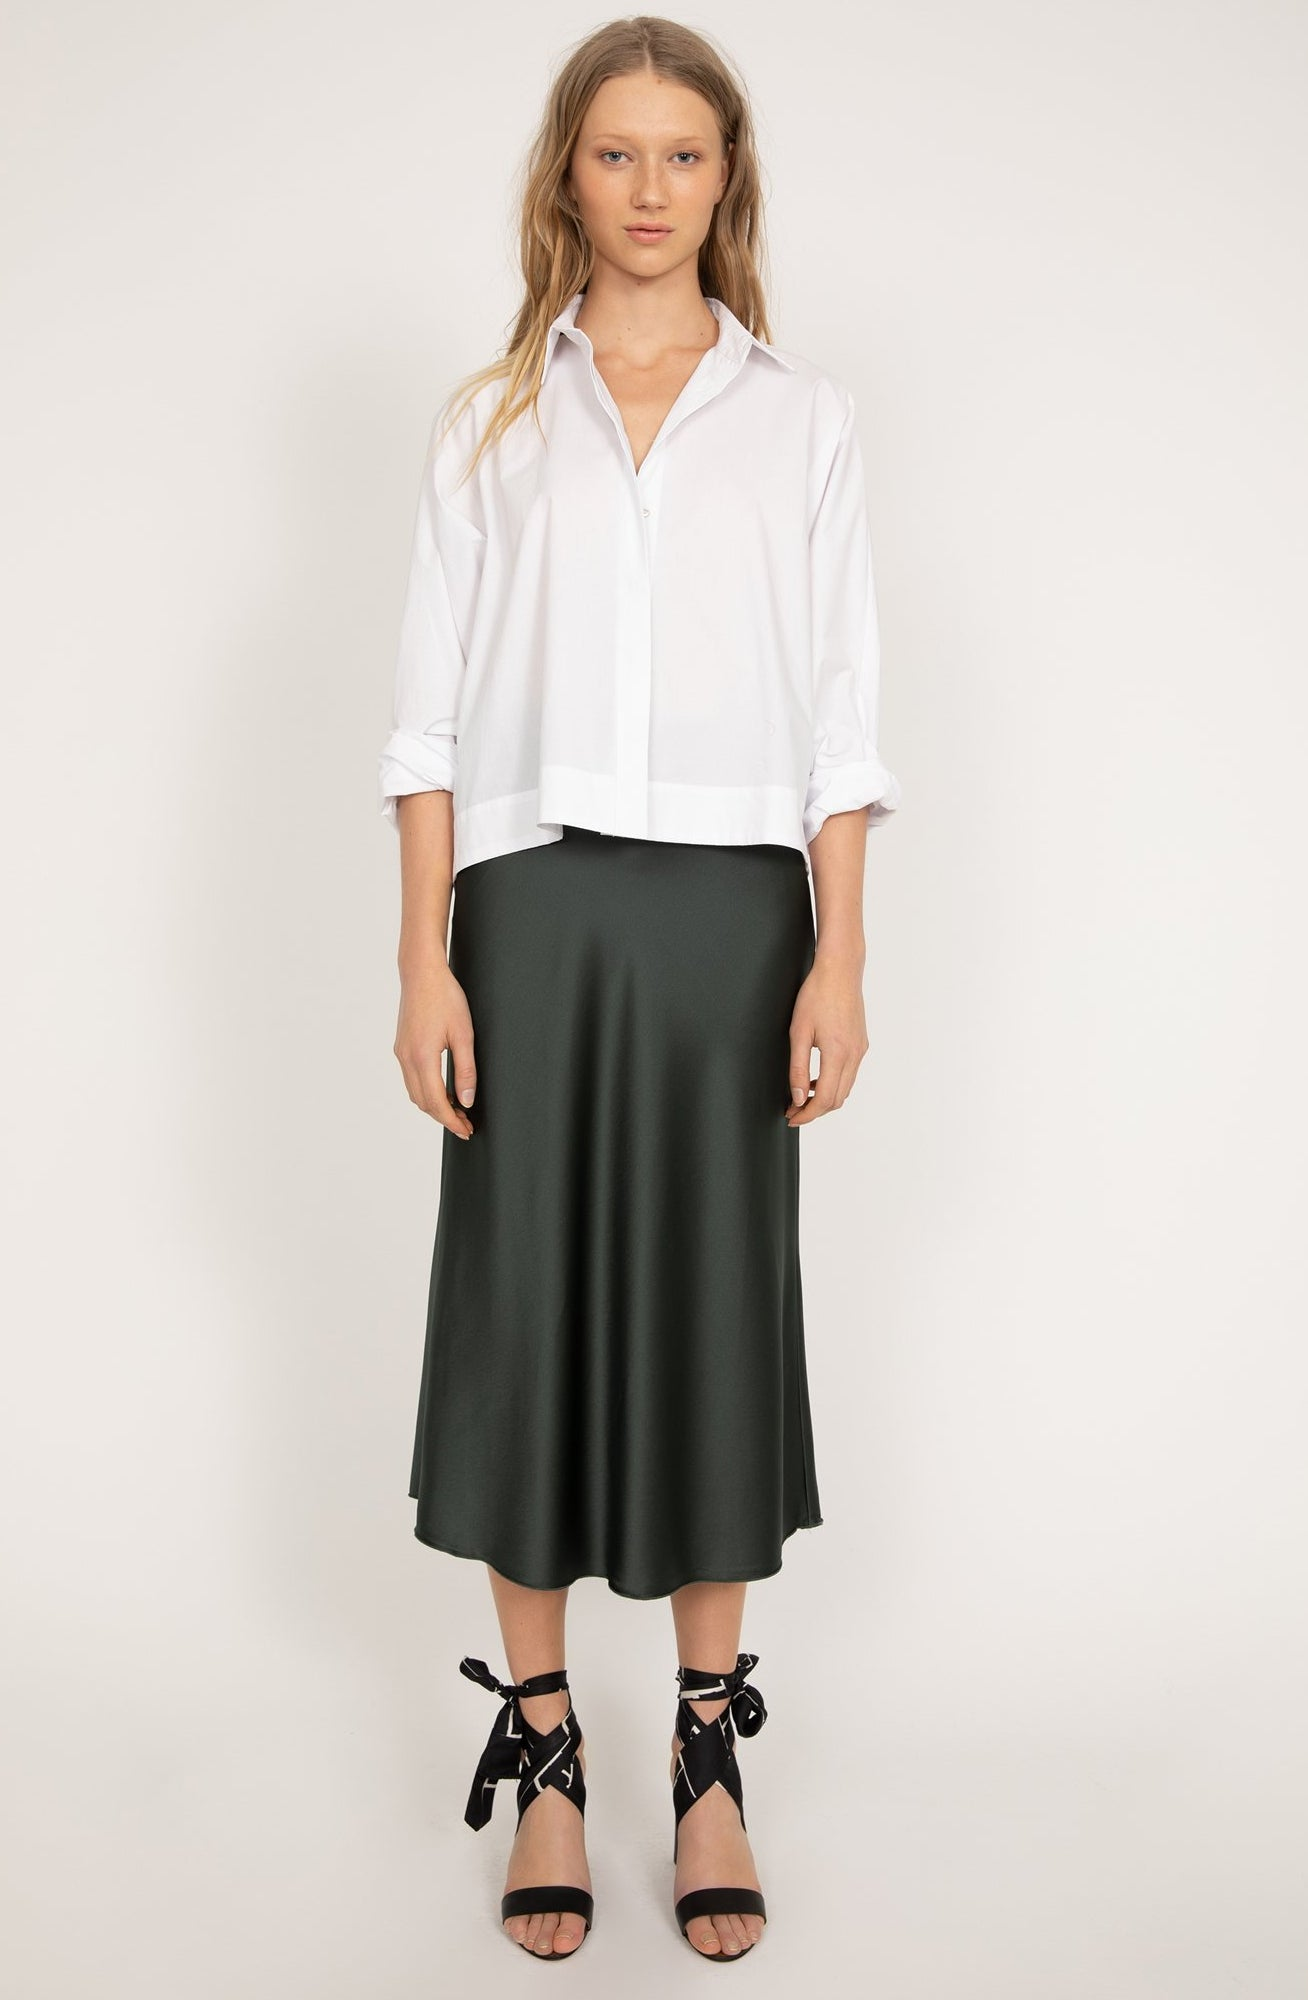 Ahlvar Gallery Gigi Shirt in White with an oversized, button-up fit crafted of cotton poplin.